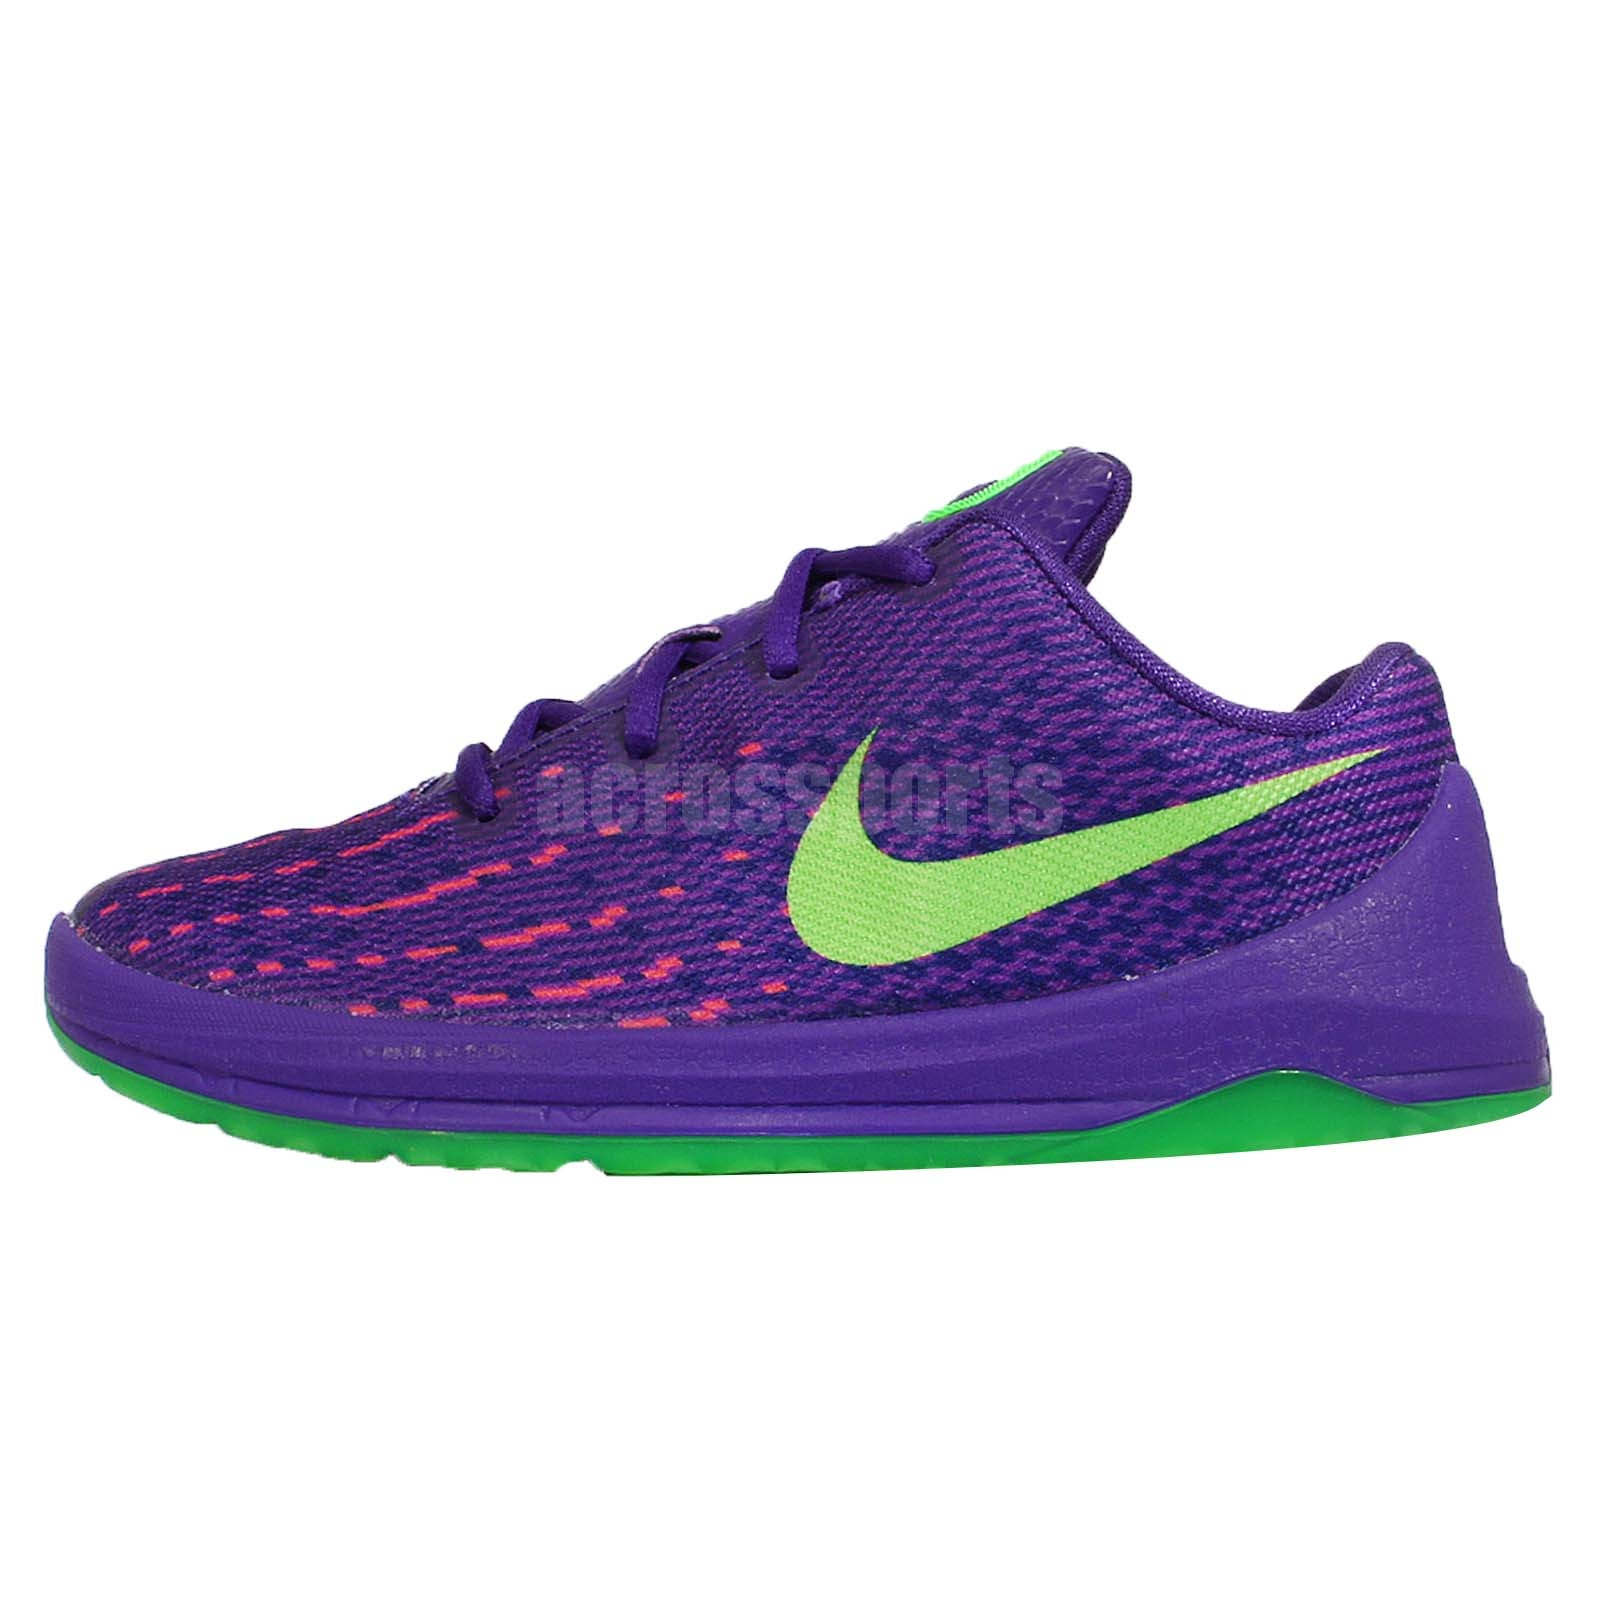 kd 8 toddler shoes trainersdiscount